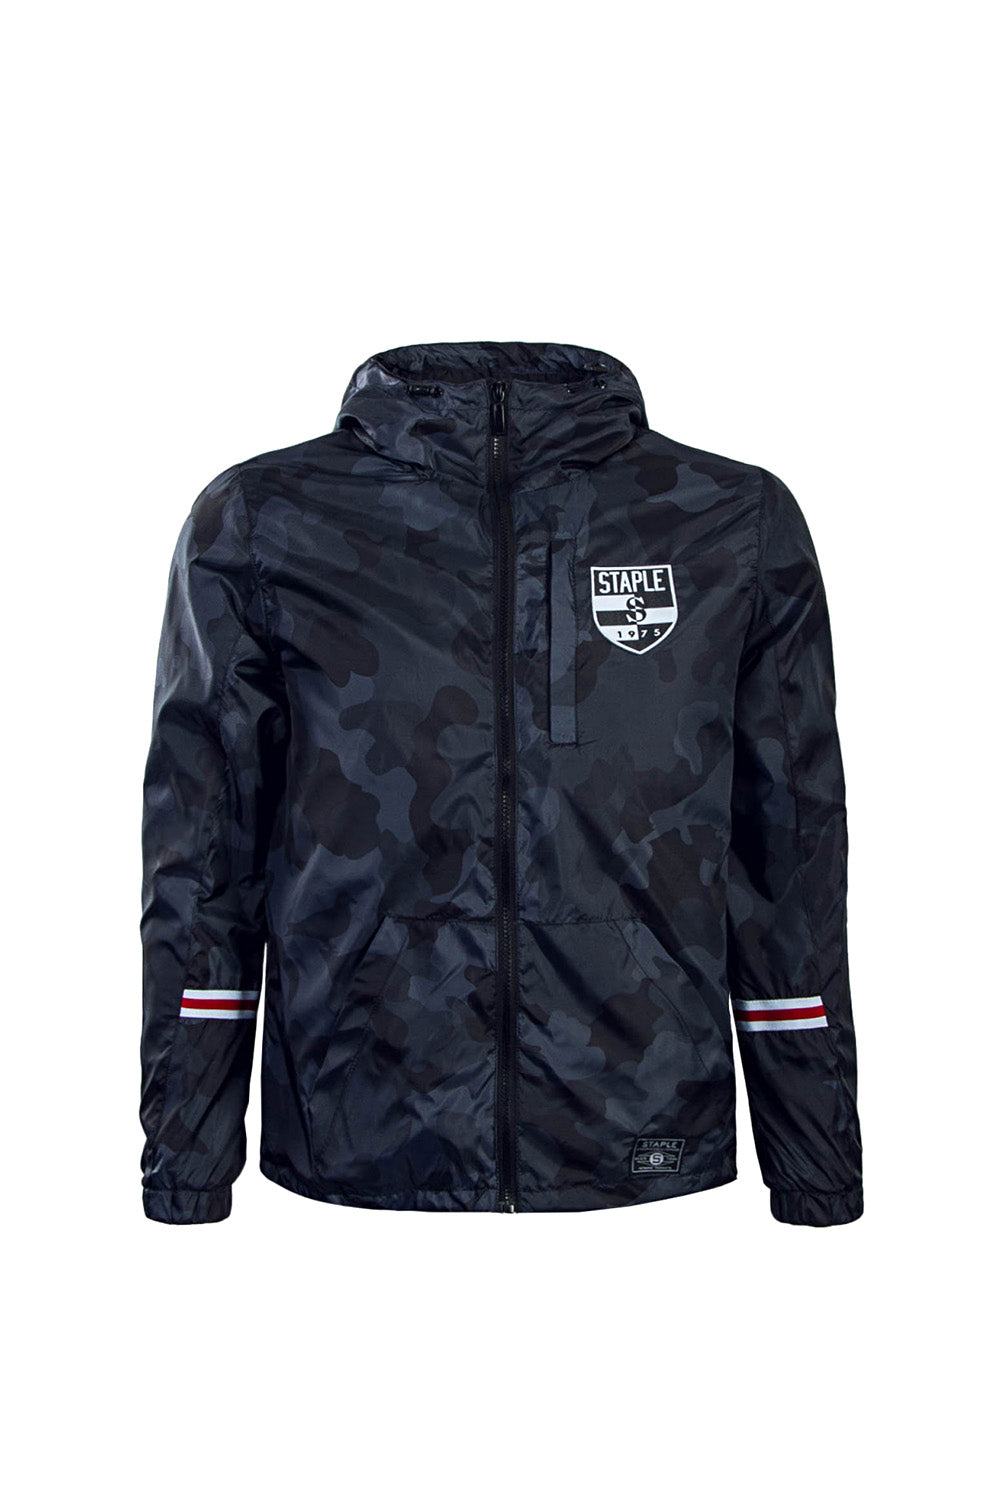 """Staple Pigeon Nylon Windbreaker"" - black/navy"